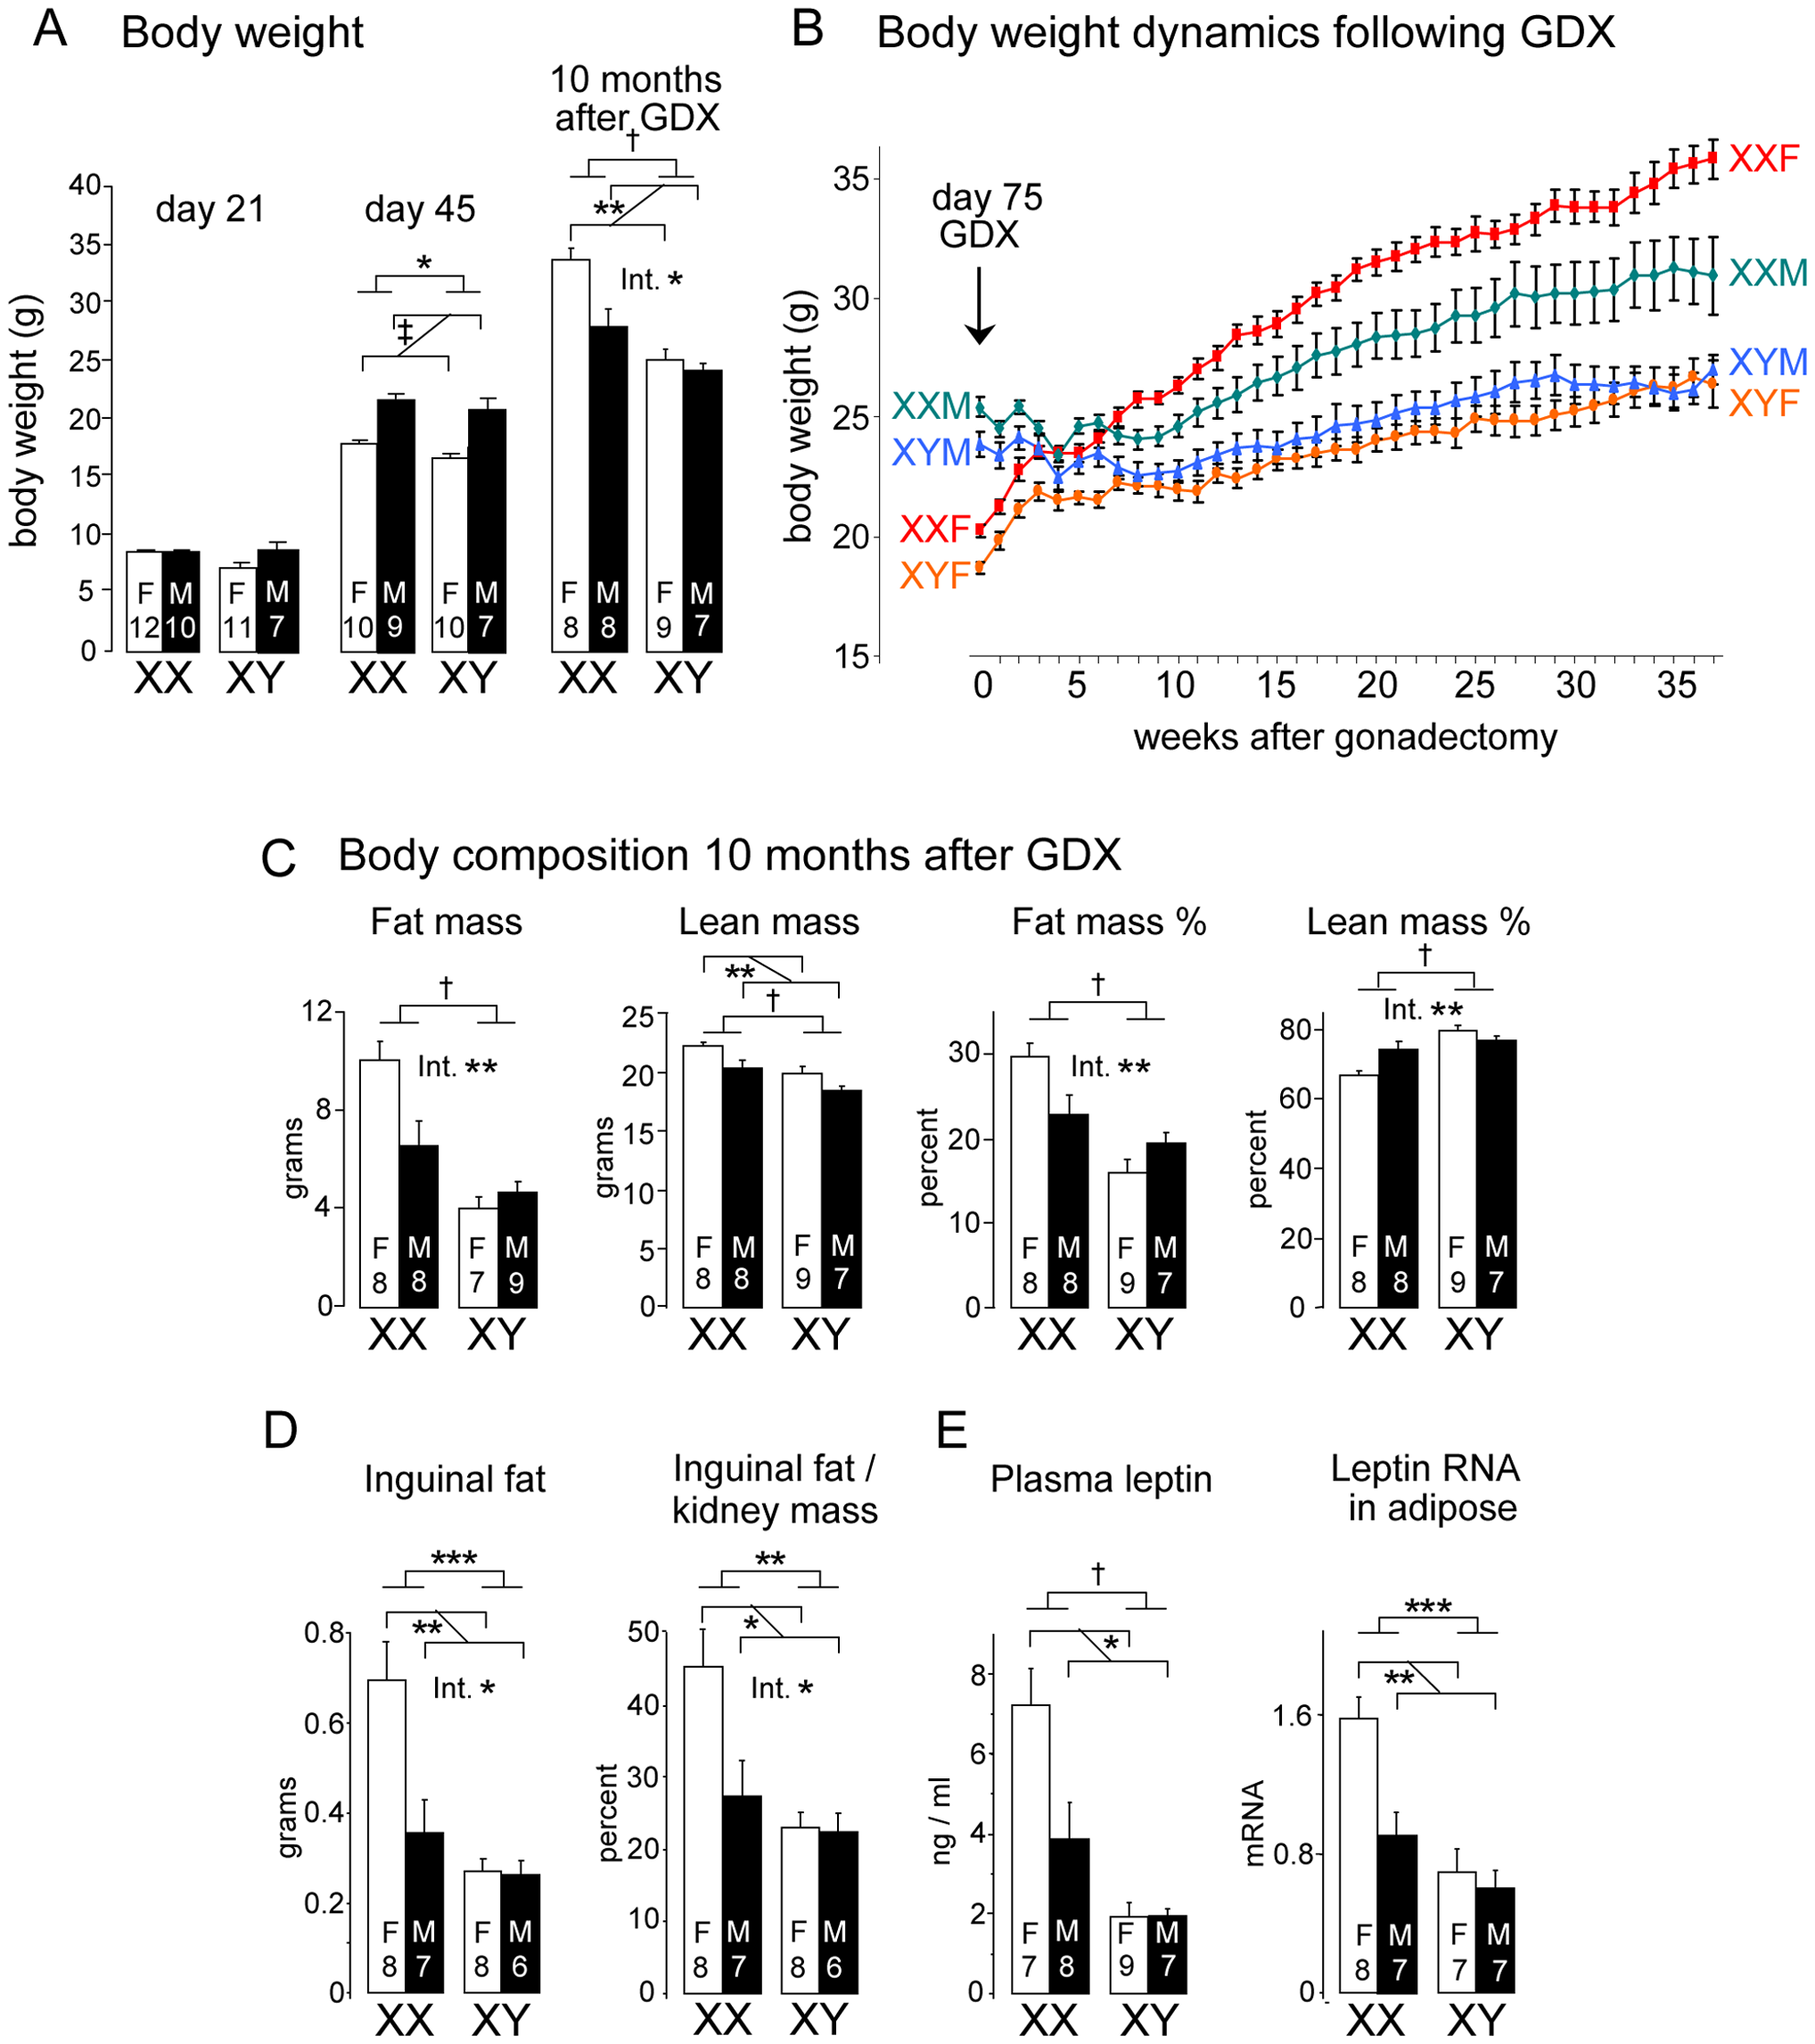 Increased body weight and fat mass in XX versus XY mice on a chow diet.